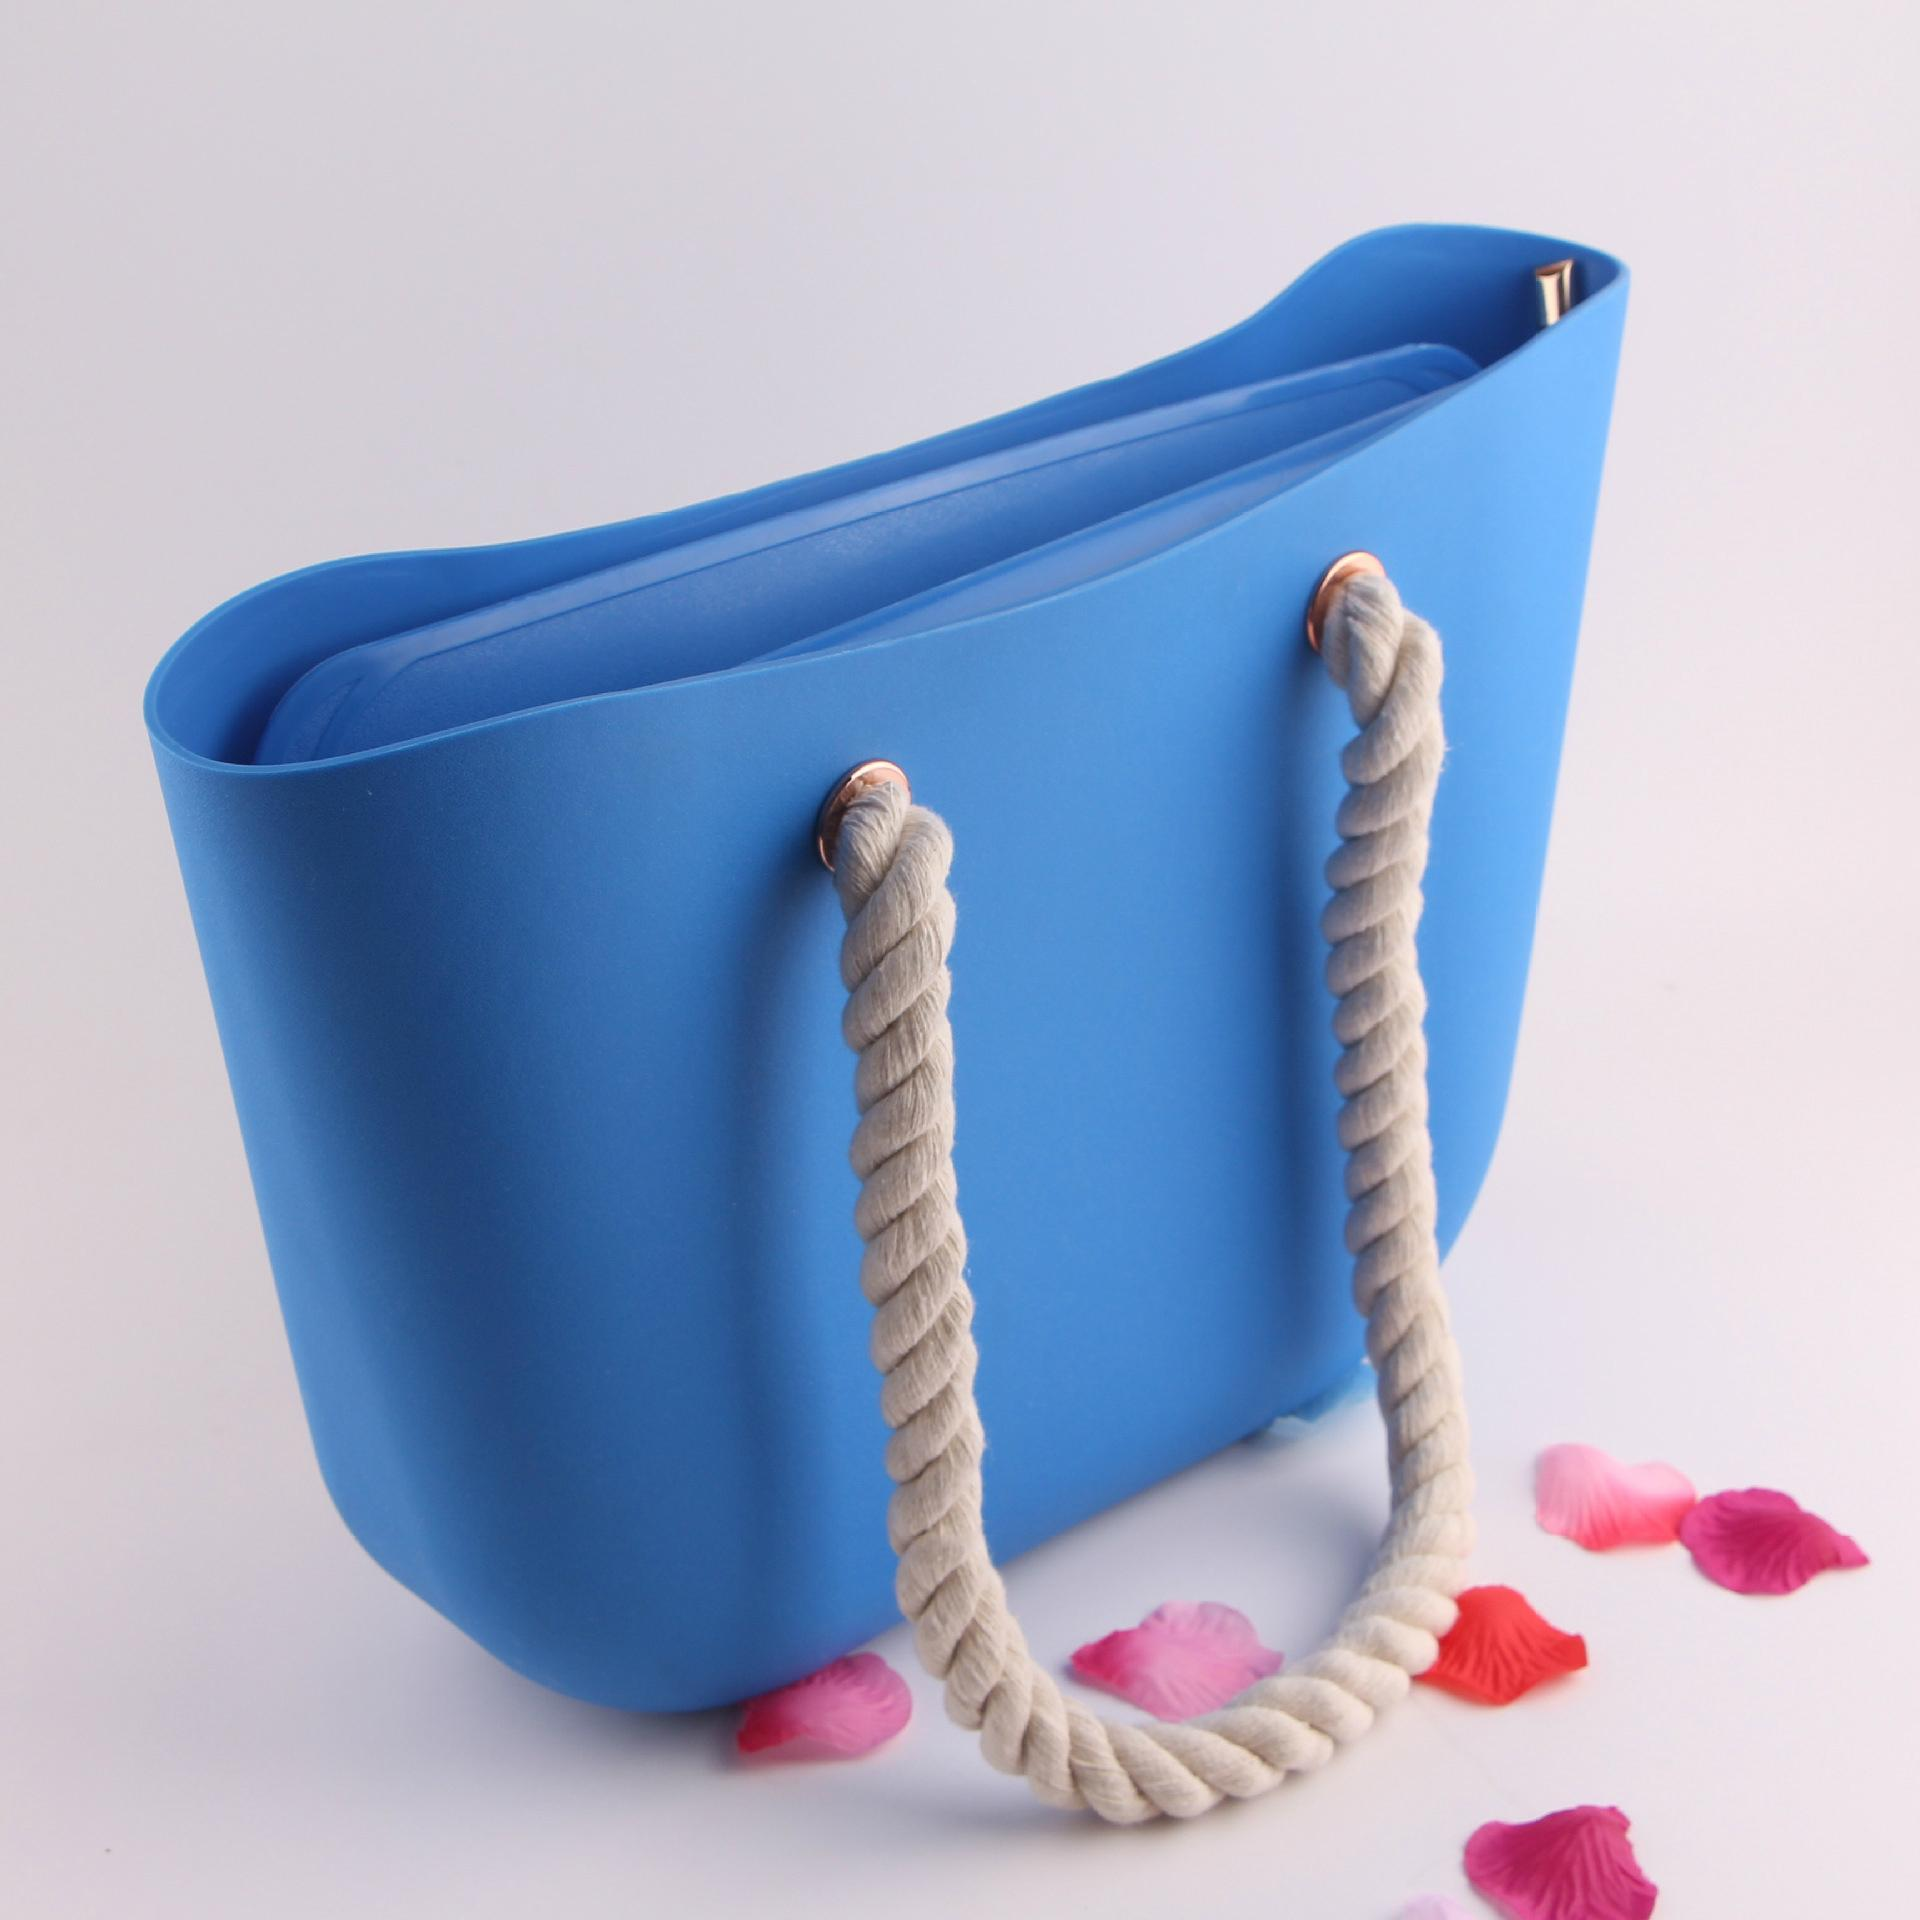 Borse Bag In Silicone : Silicone beach bags tote bag for ladies